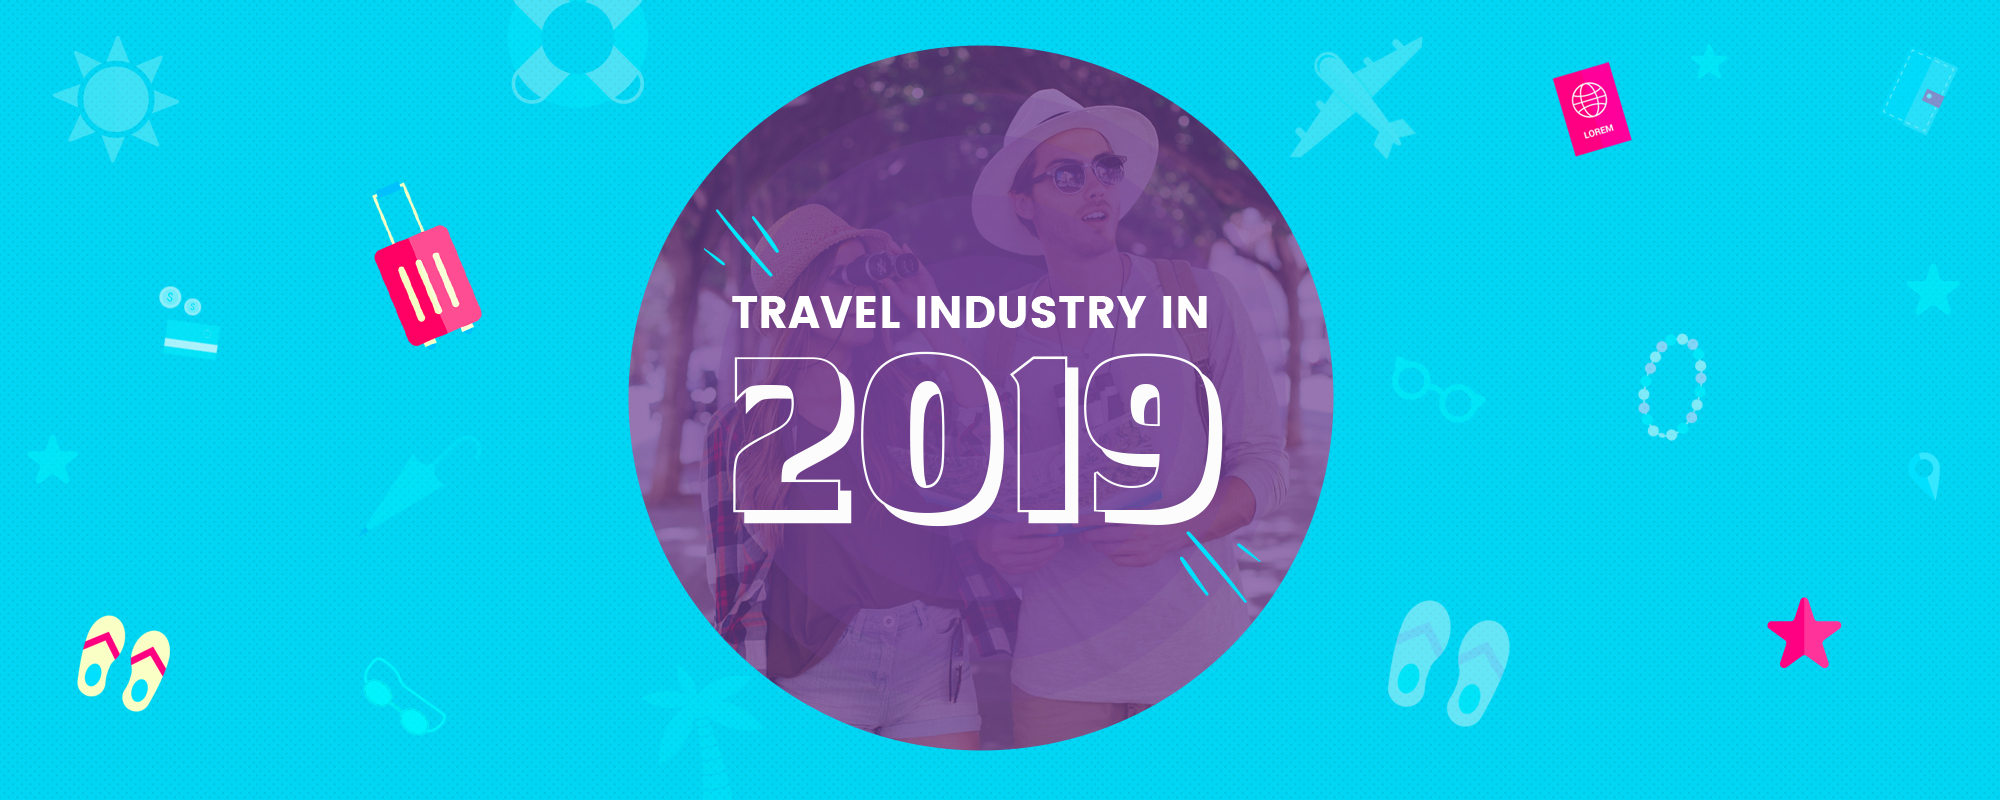 What Does The Future Hold For Travel Industry In 2019?